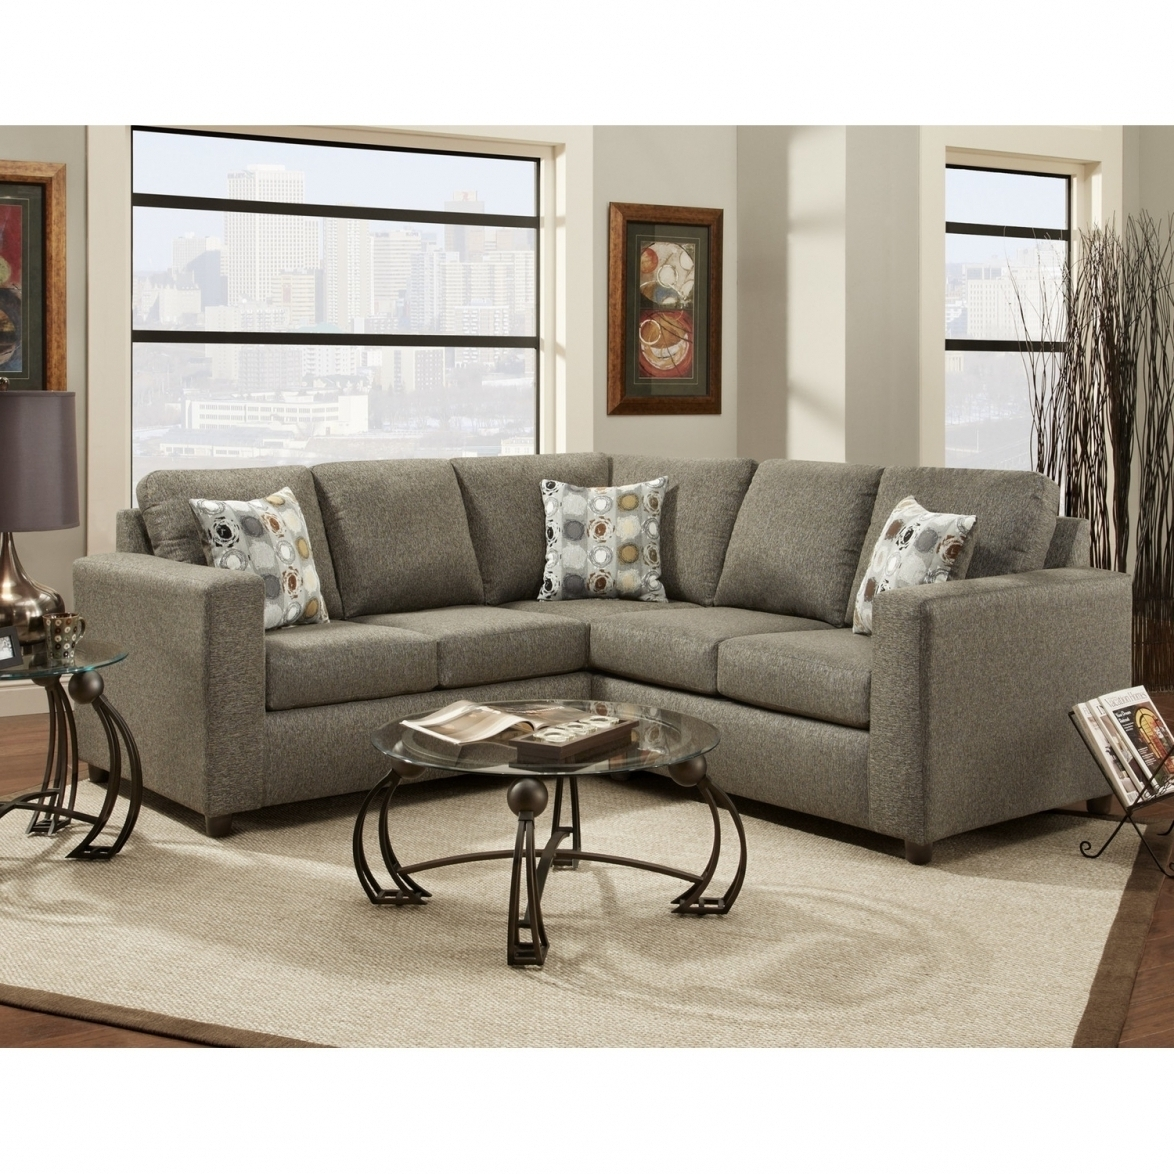 Image Gallery of Jacksonville Fl Sectional Sofas (View 12 of 20 Photos)